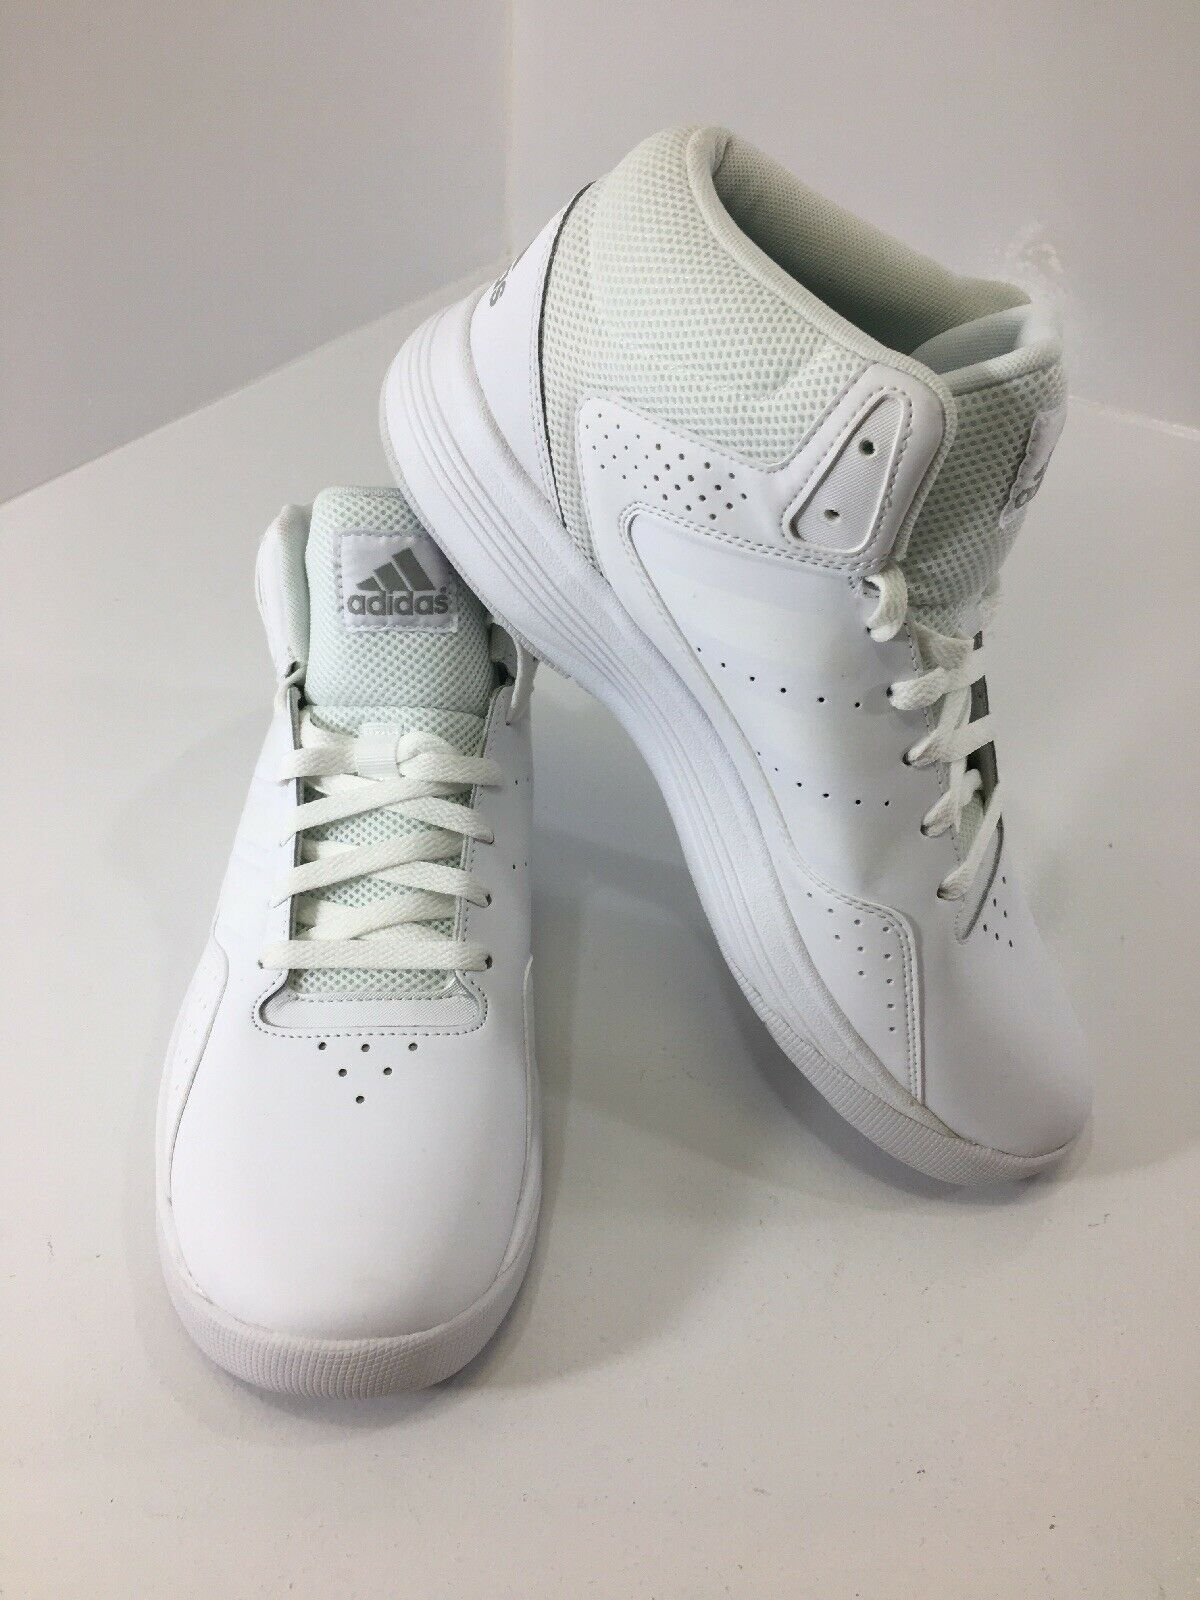 Adidas Men's Performance Mid Top Cloudfoam Ilation Sneakers White US 11 NEW @